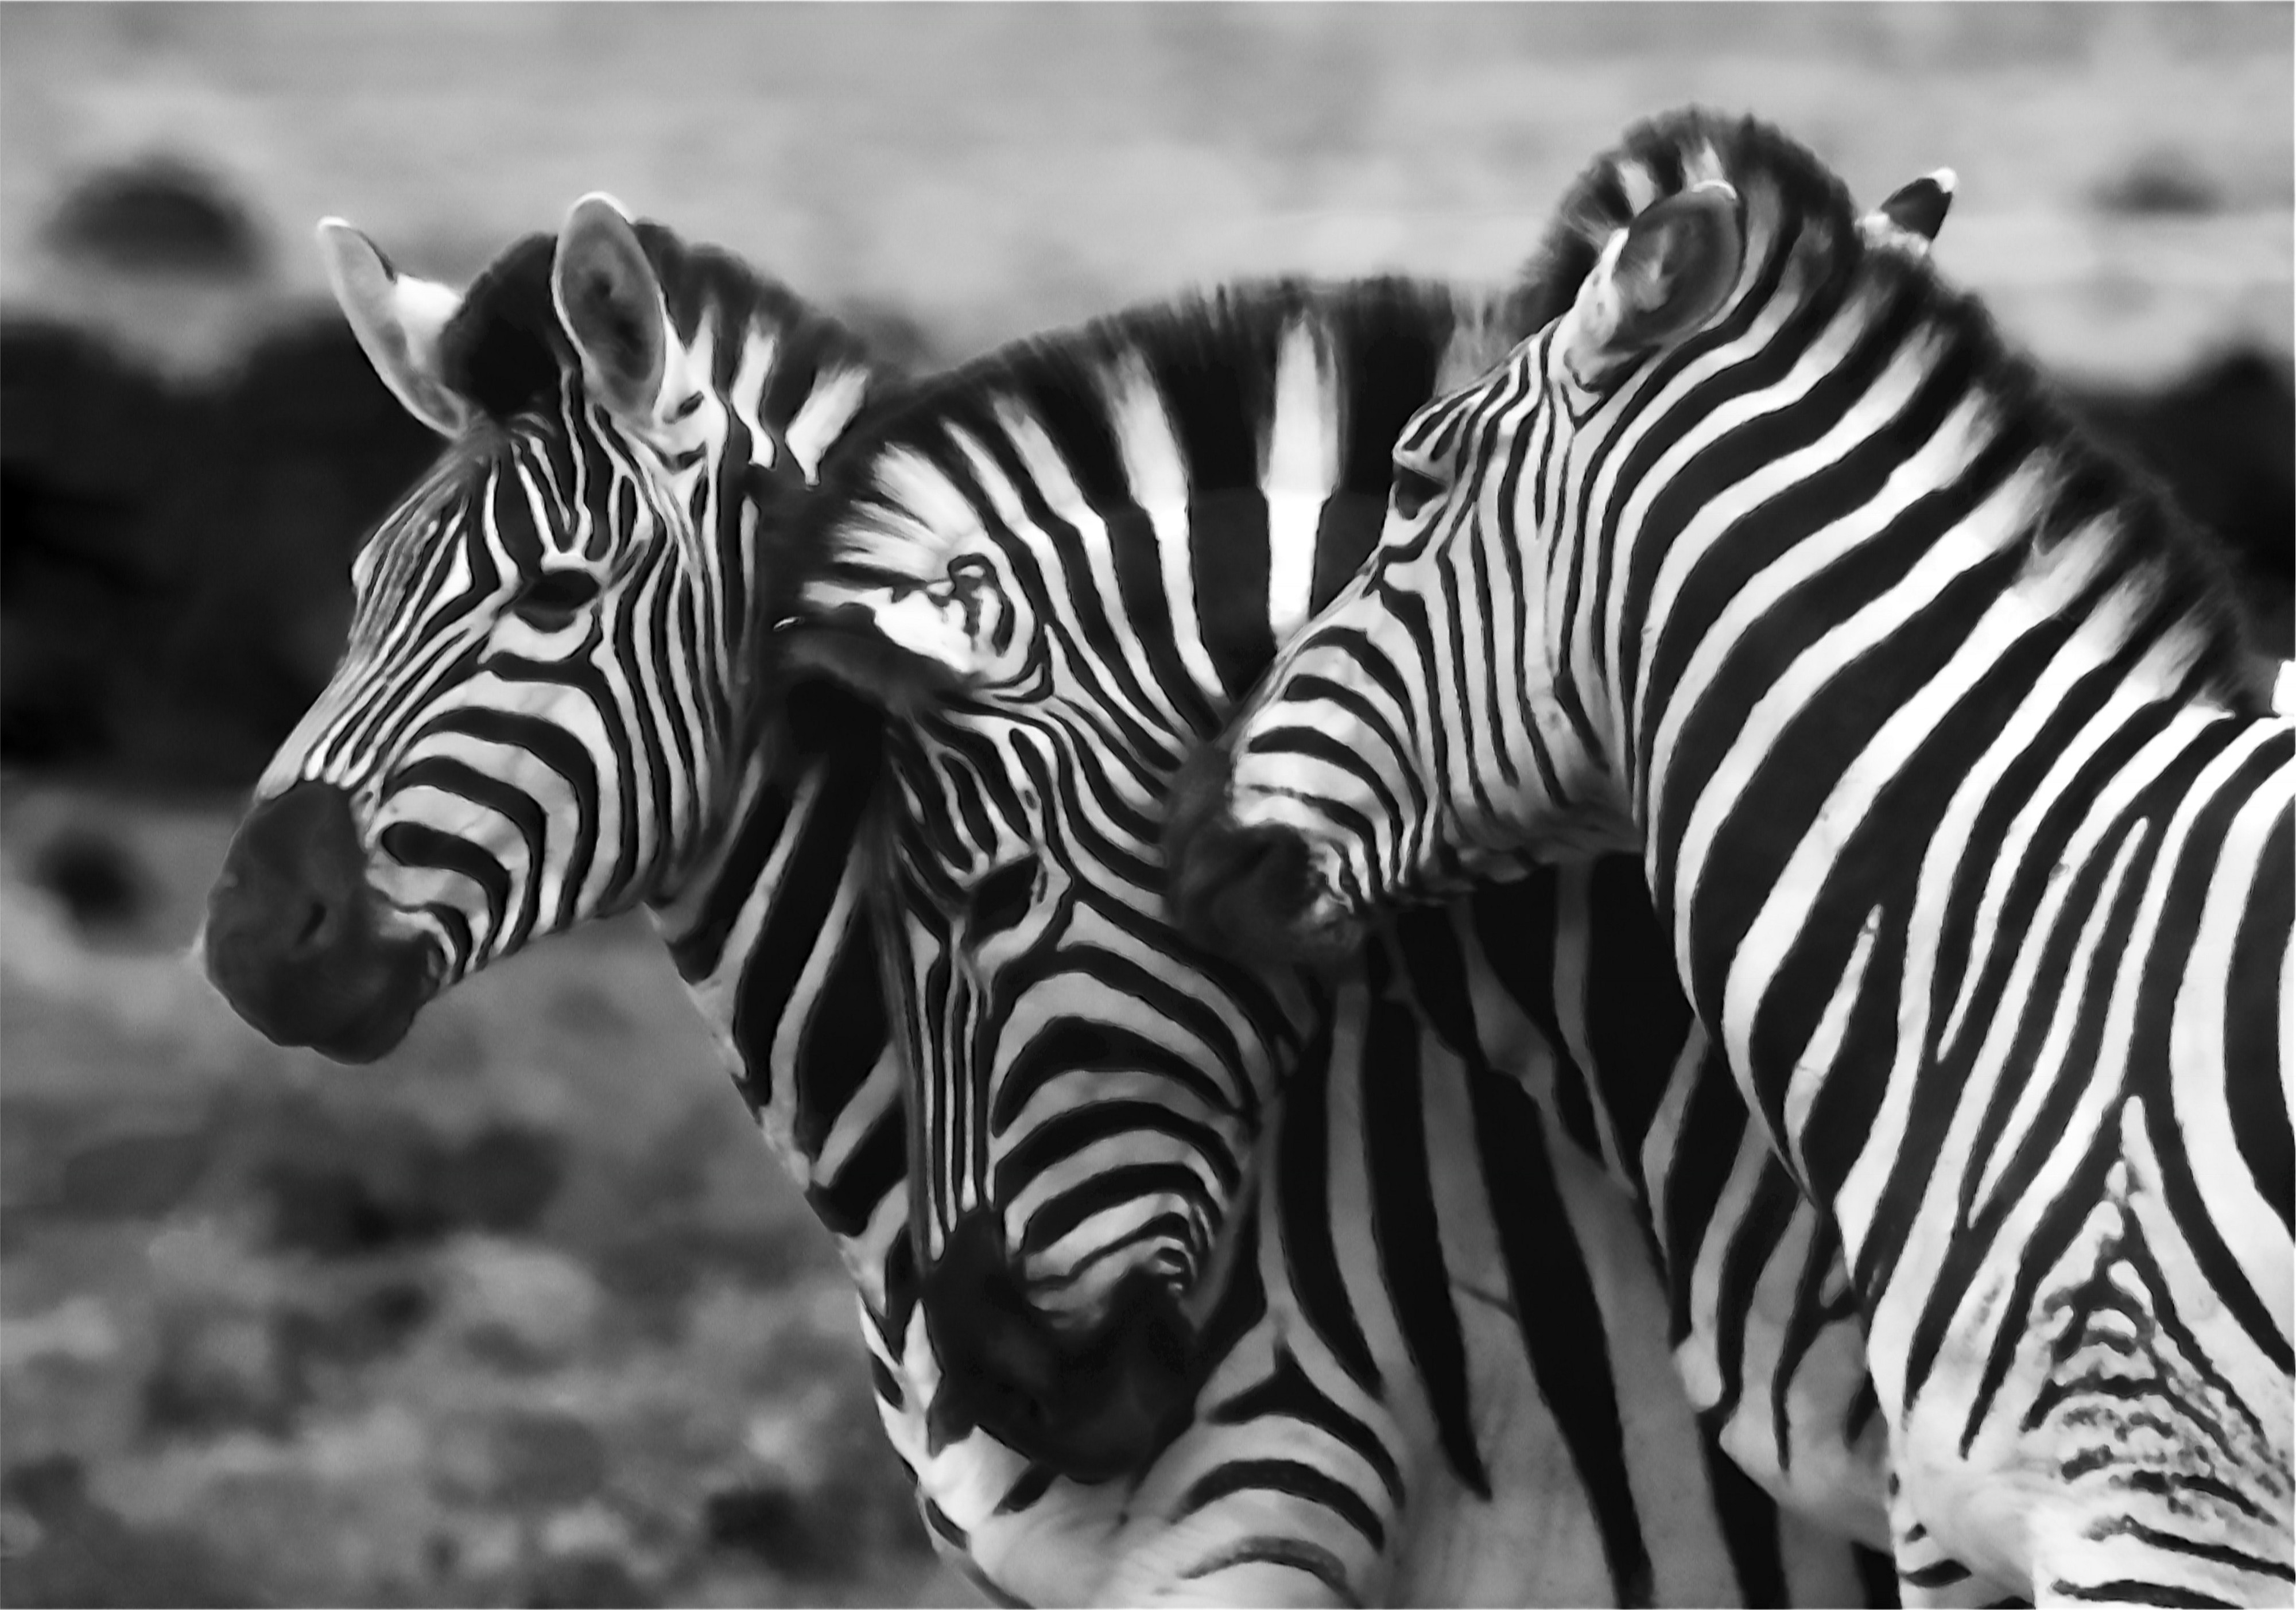 zebras standing together and conforming to protect from predators